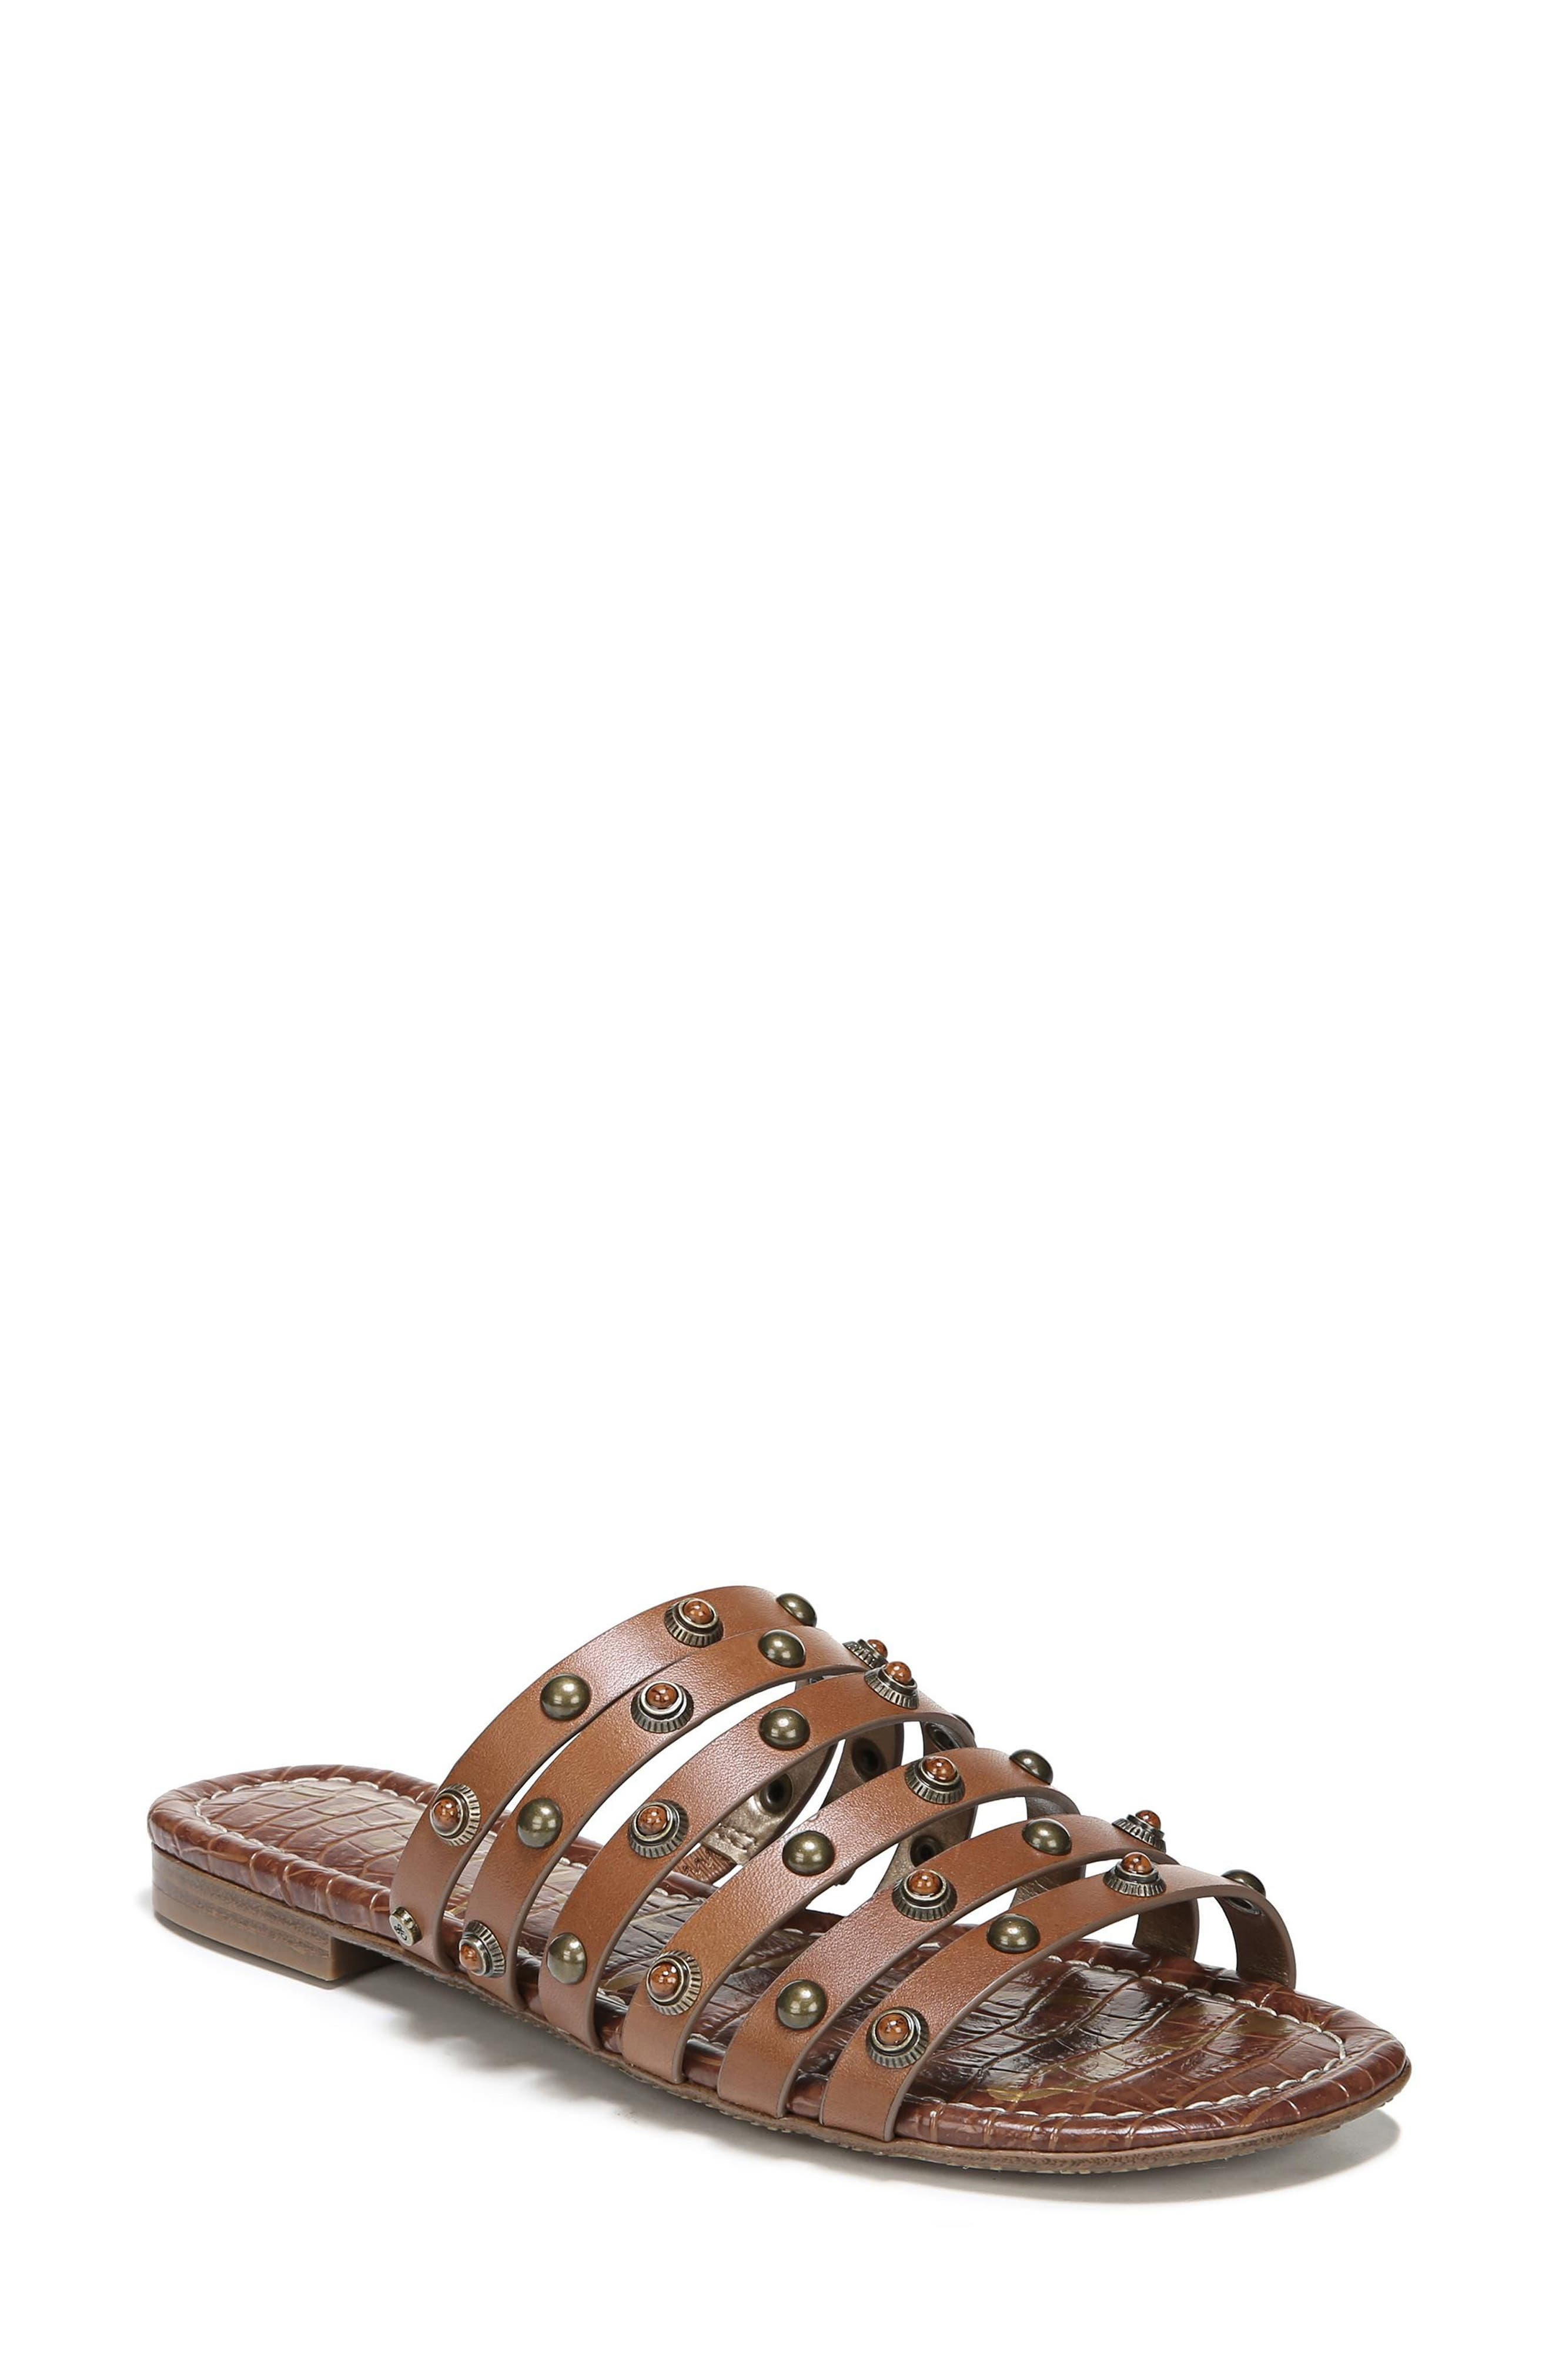 Brea Studded Slide Sandal,                             Main thumbnail 3, color,